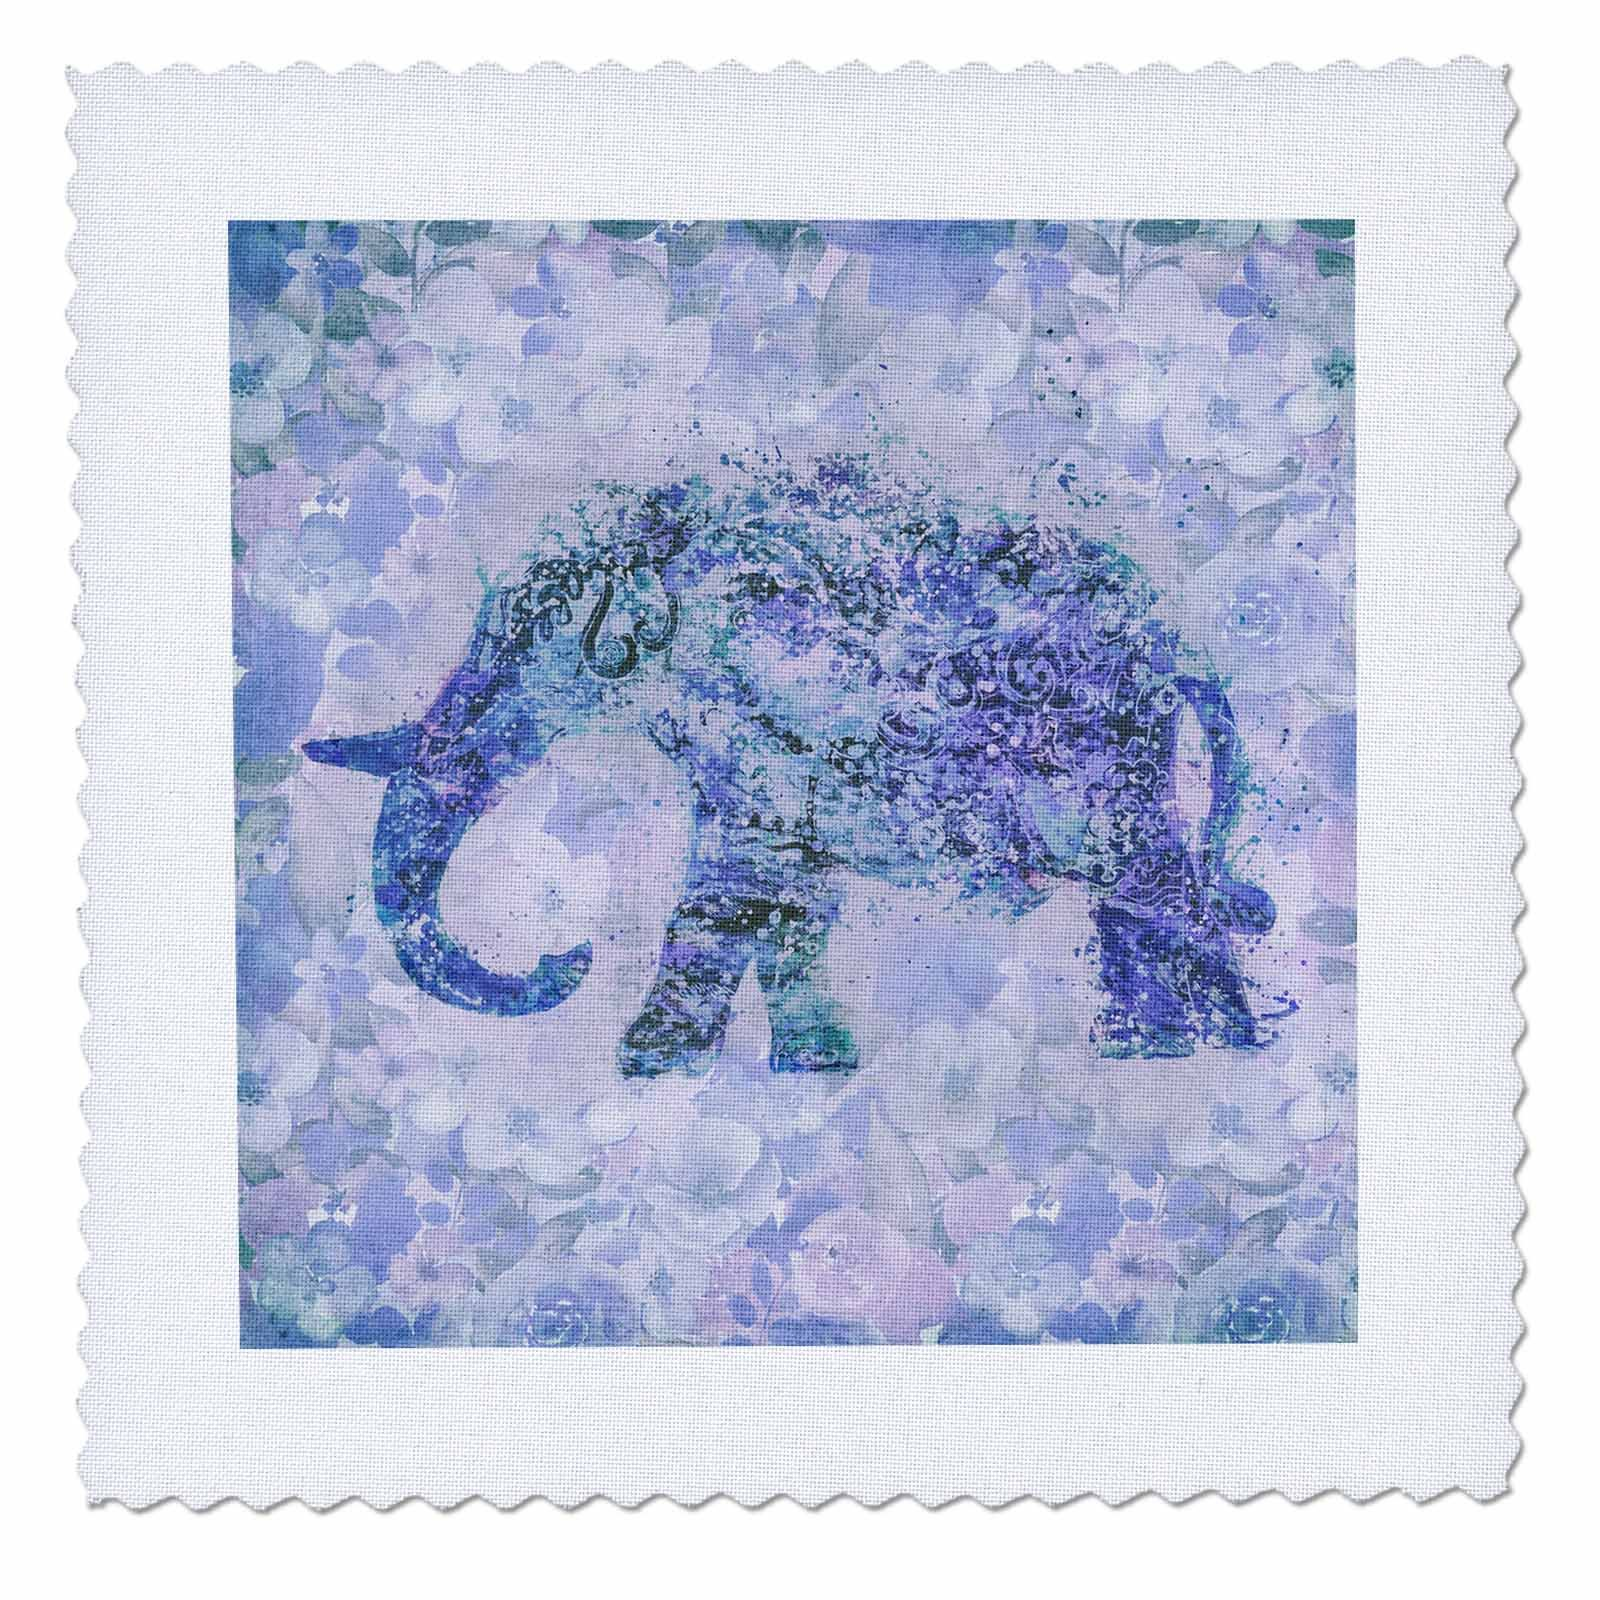 3dRose Andrea Haase Animals Illustration - Floral Elephant Illustration In Shades Of Blue And Purple - 22x22 inch quilt square (qs_276225_9)